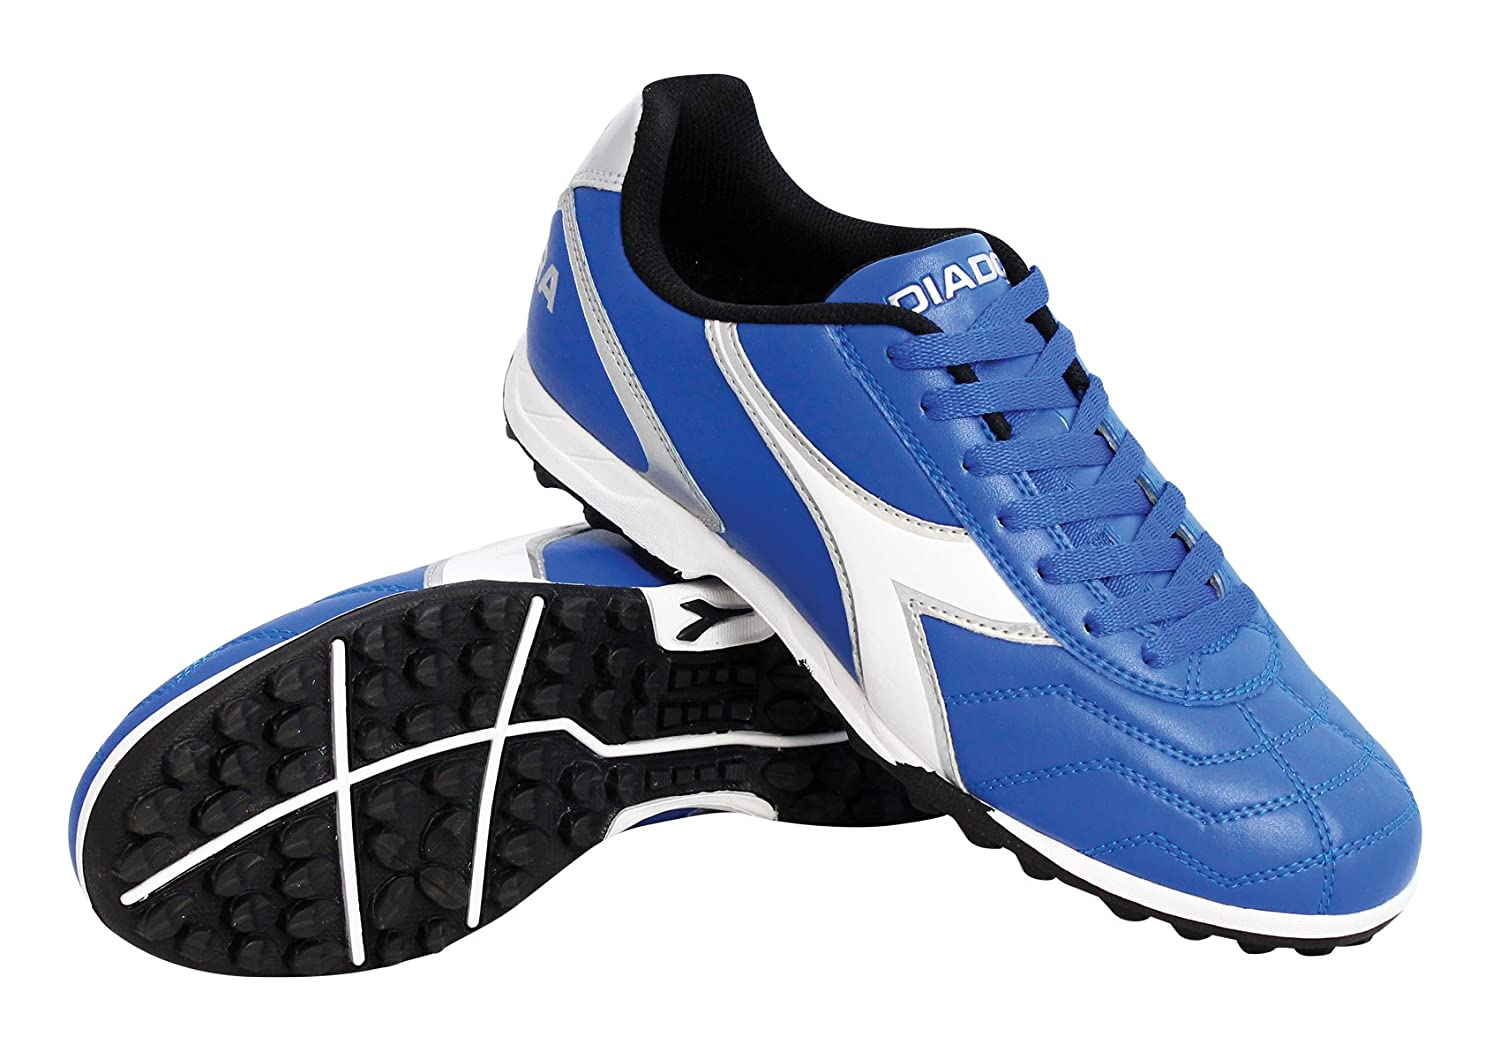 Diadora Men's Capitano Turf Soccer Shoes B0745JC1FH 7.5 D(M) US|Royal / White / Silver